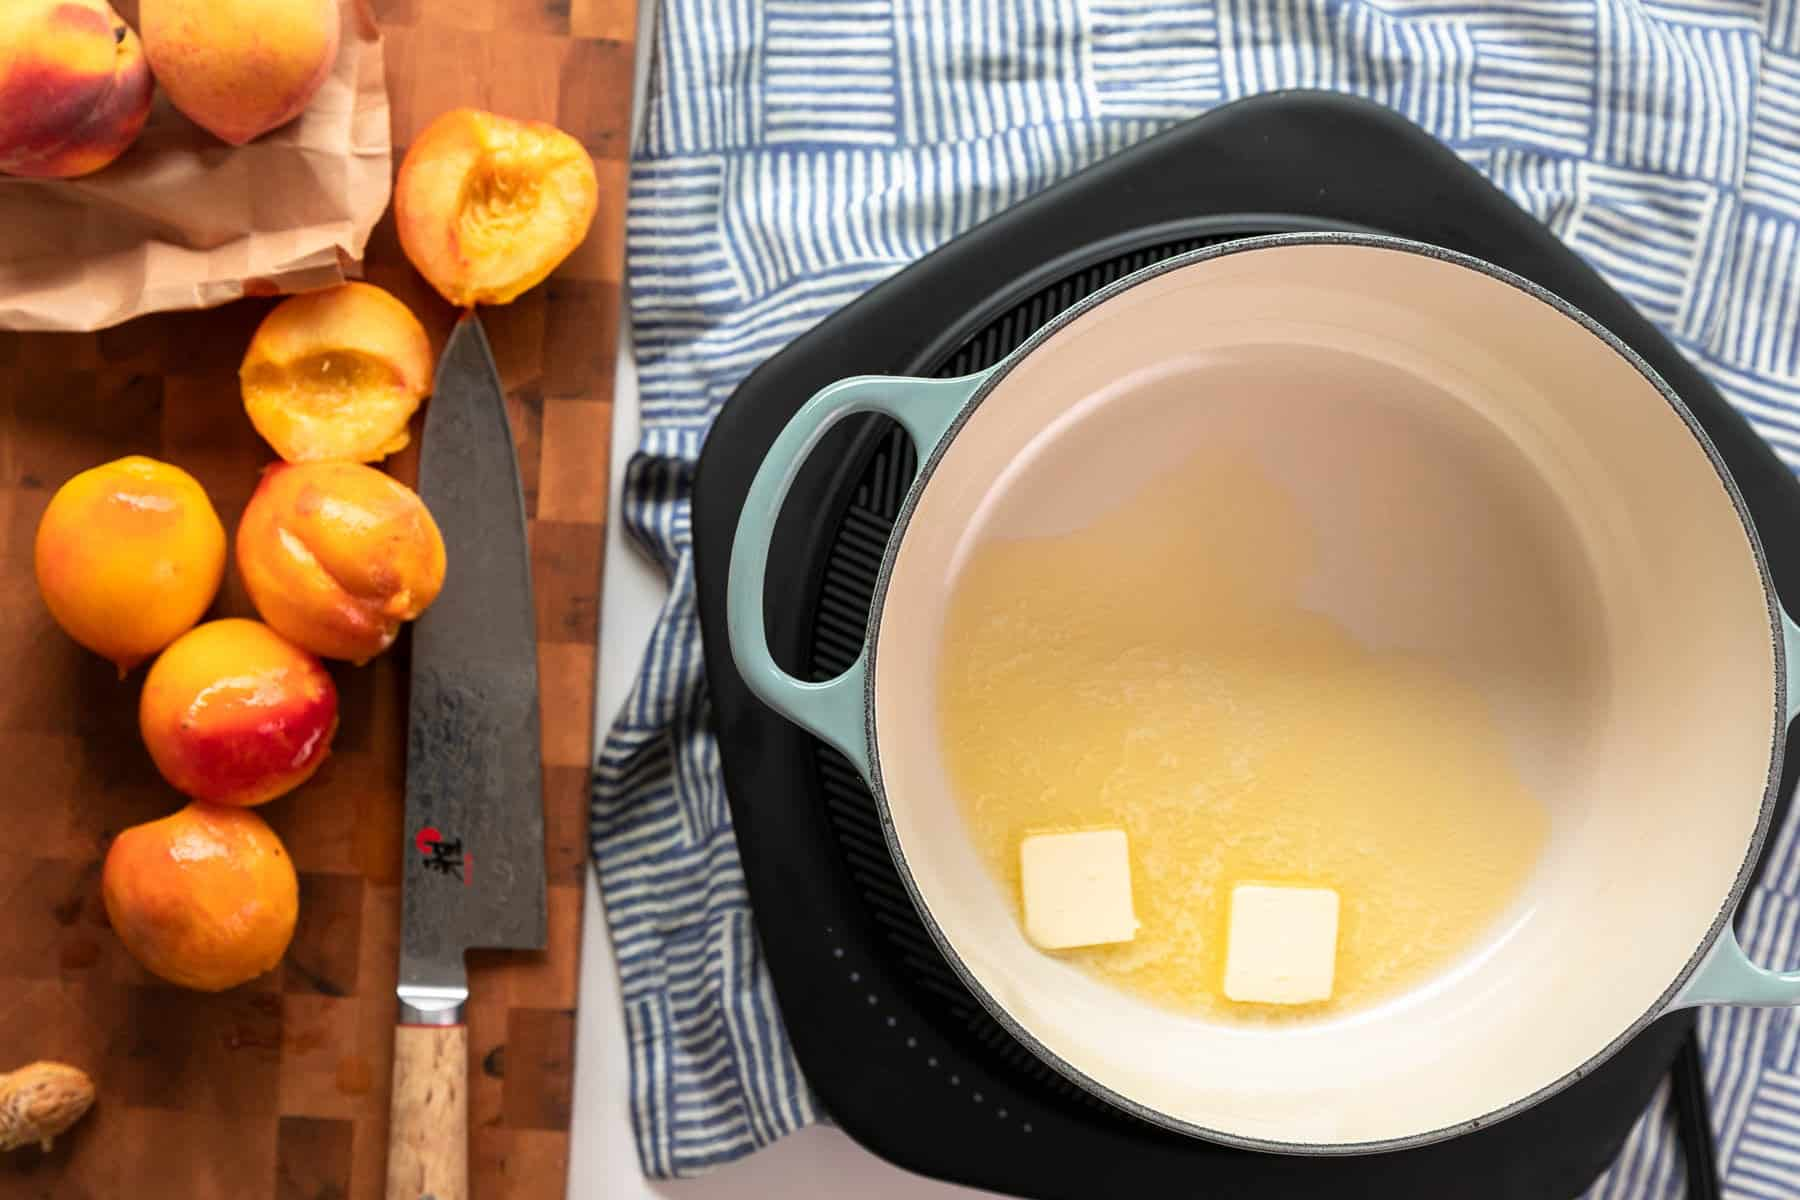 sliced peaches on an end grain maple cutting board with dutch oven melting butter preparing to saute the peaches